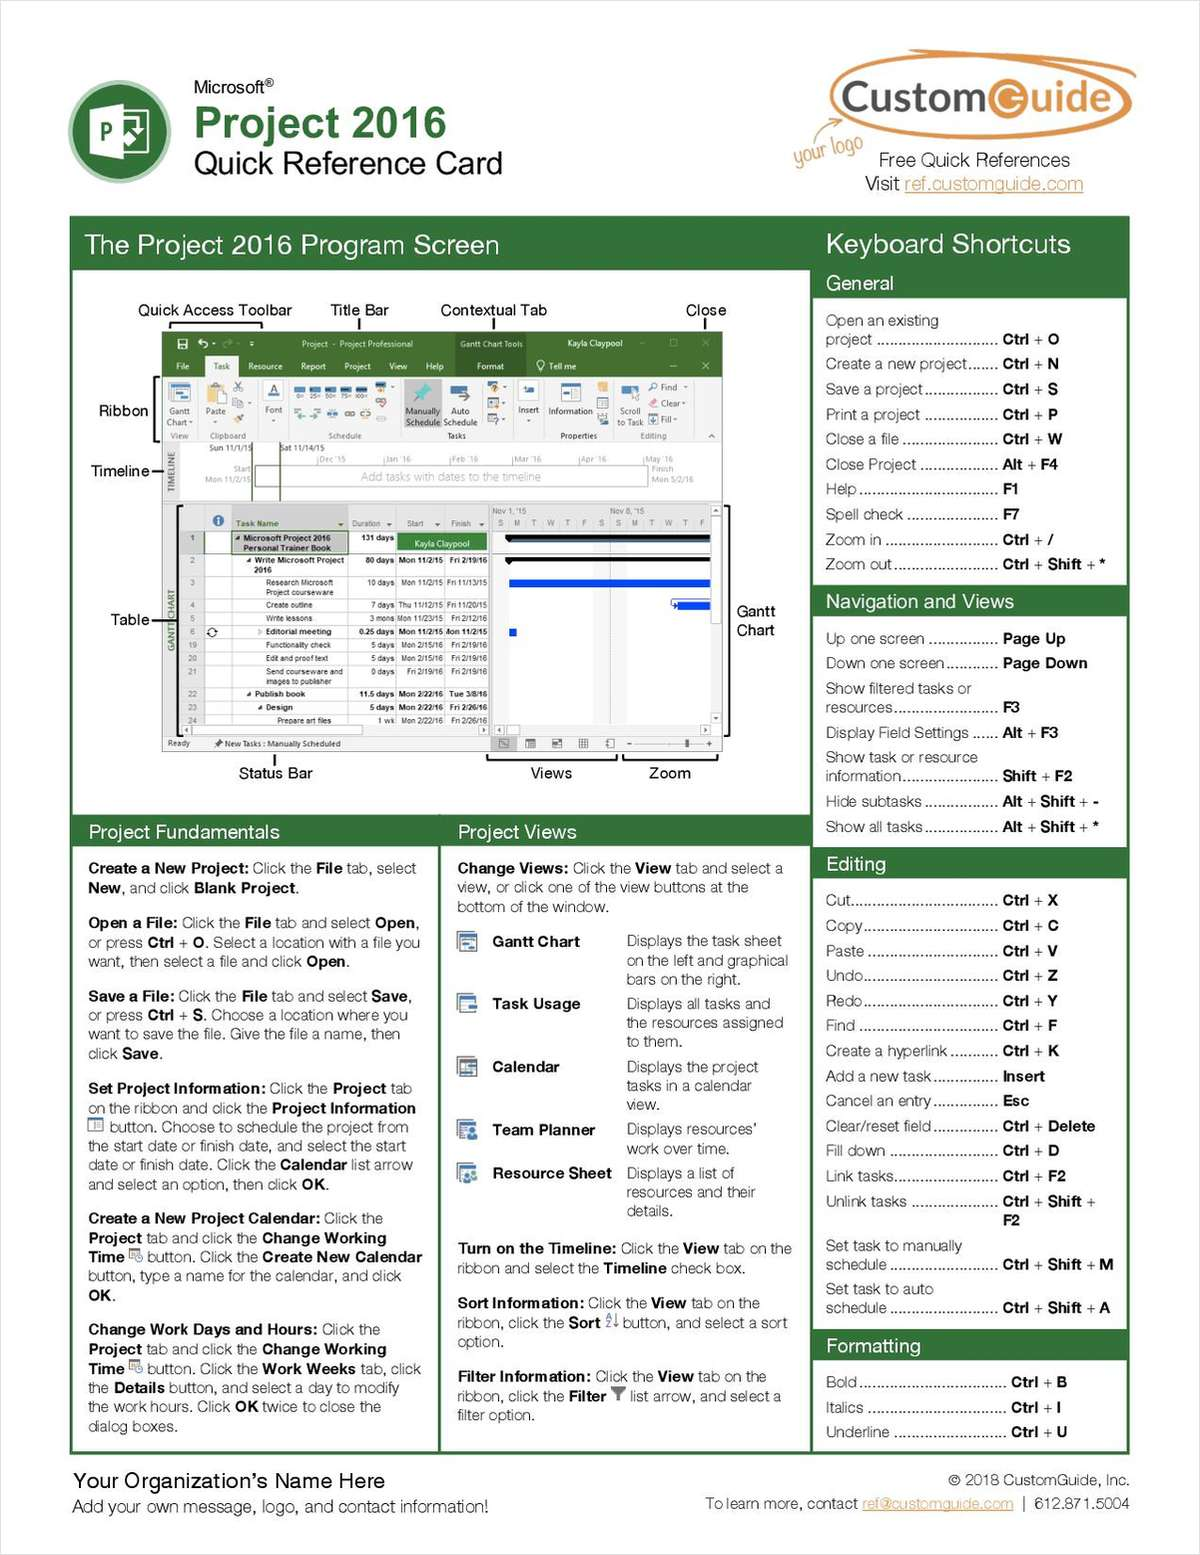 Microsoft Project 2016 - Quick Reference Card